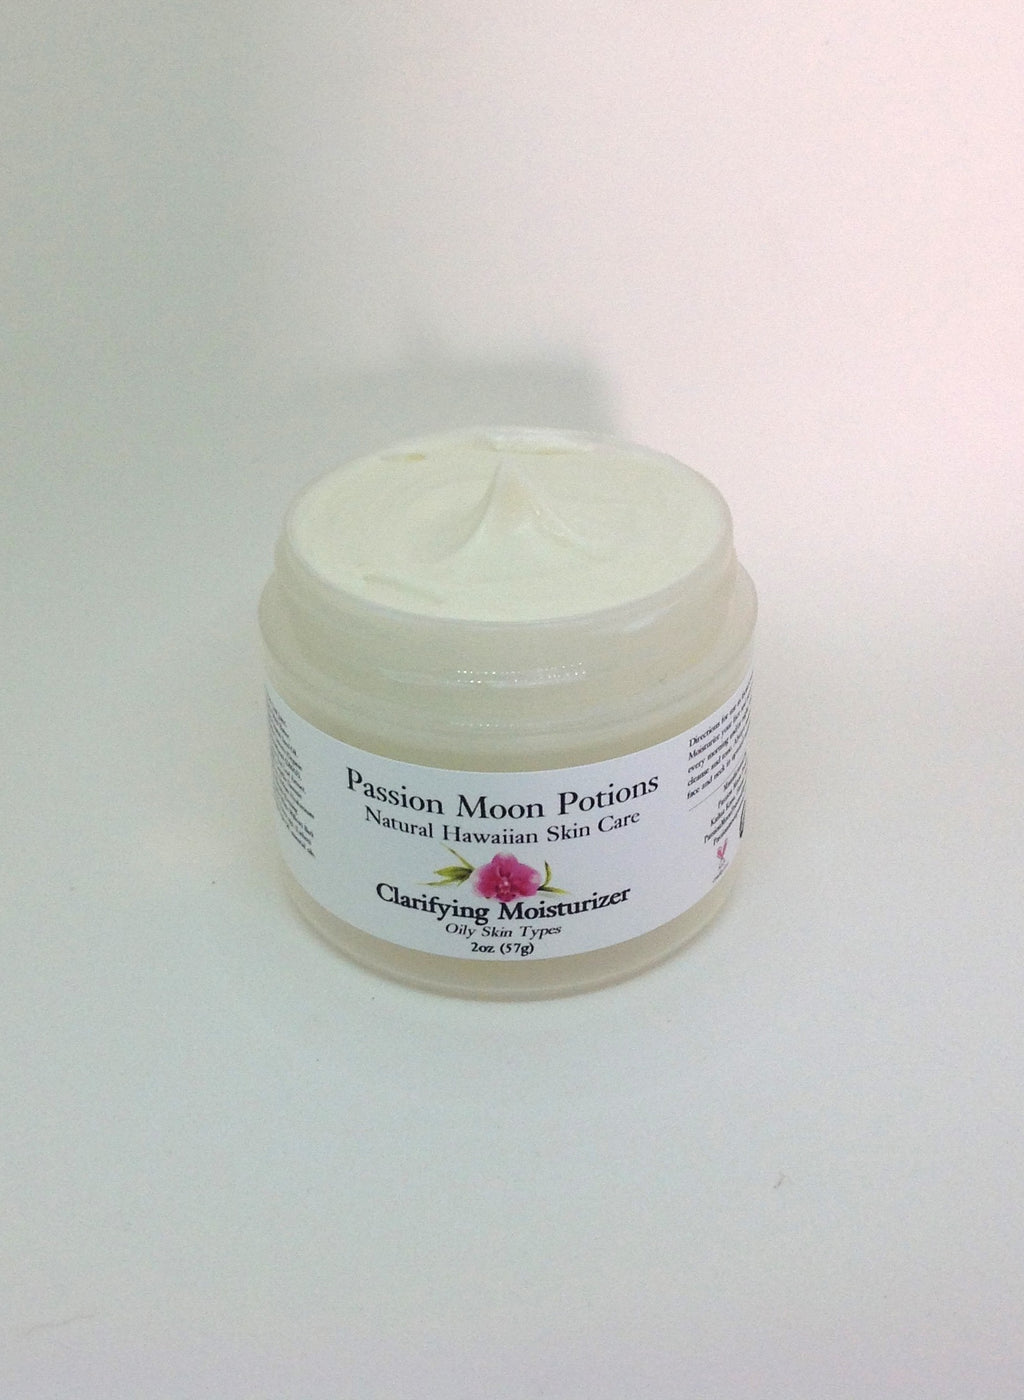 Clarifying Moisturizer - Passion Moon Potions - 1